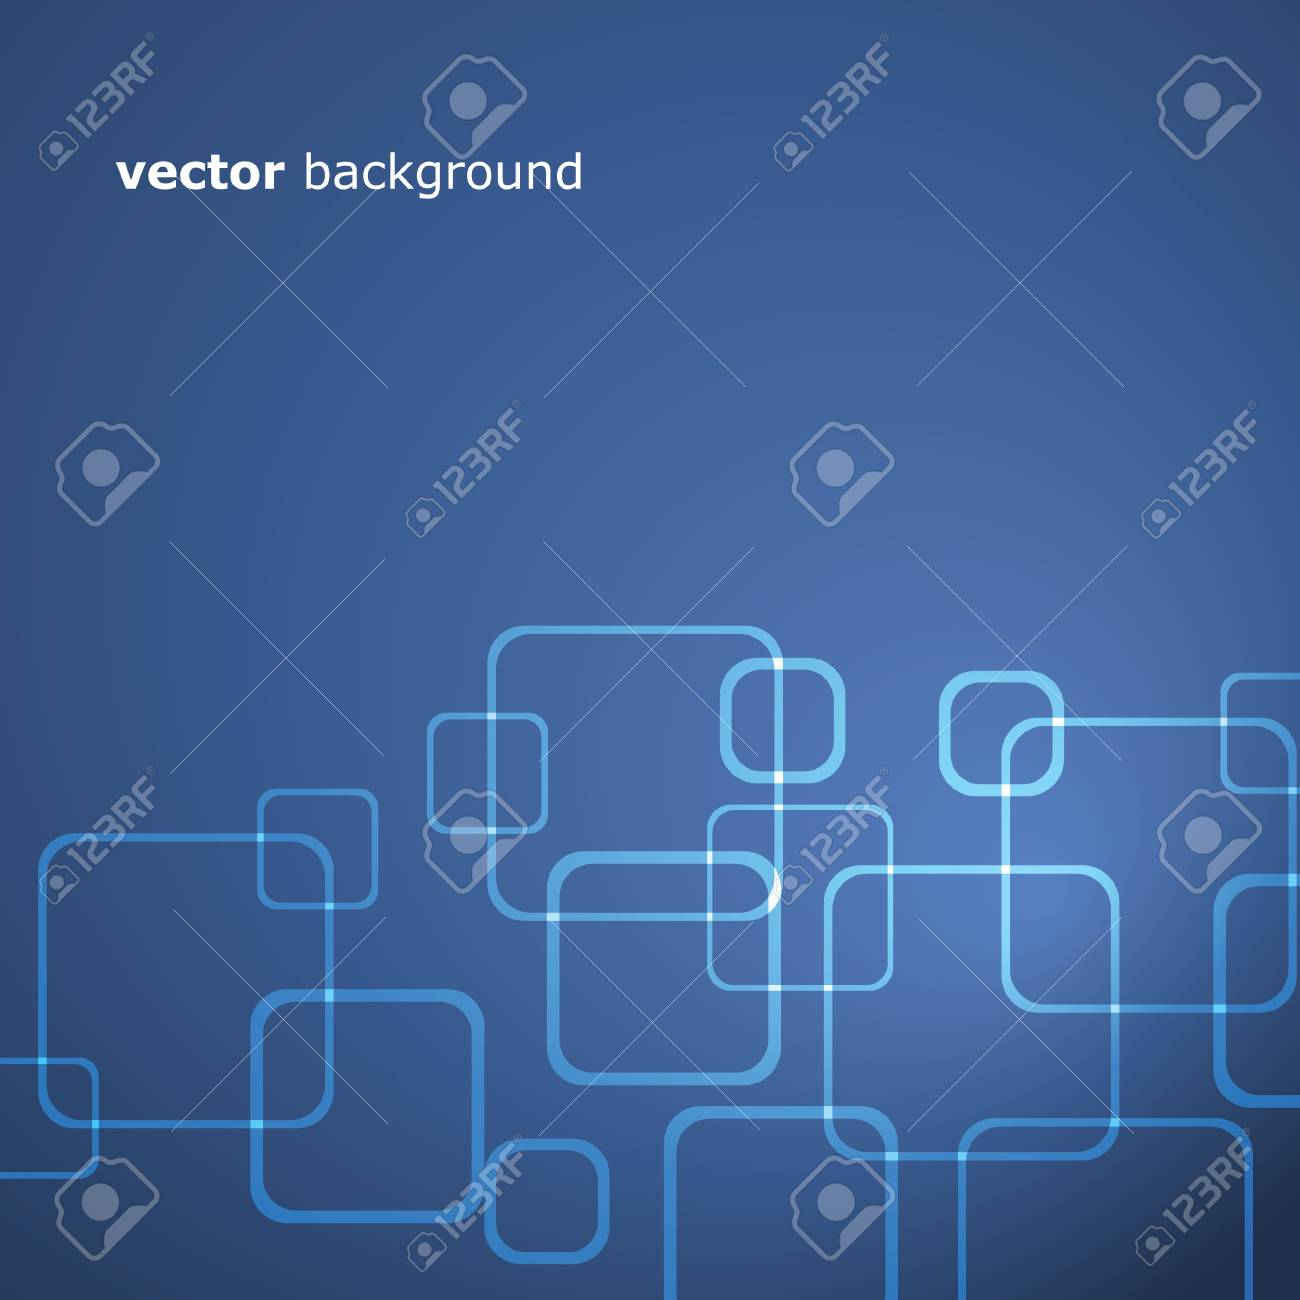 Abstract Background Stock Vector - 12069667